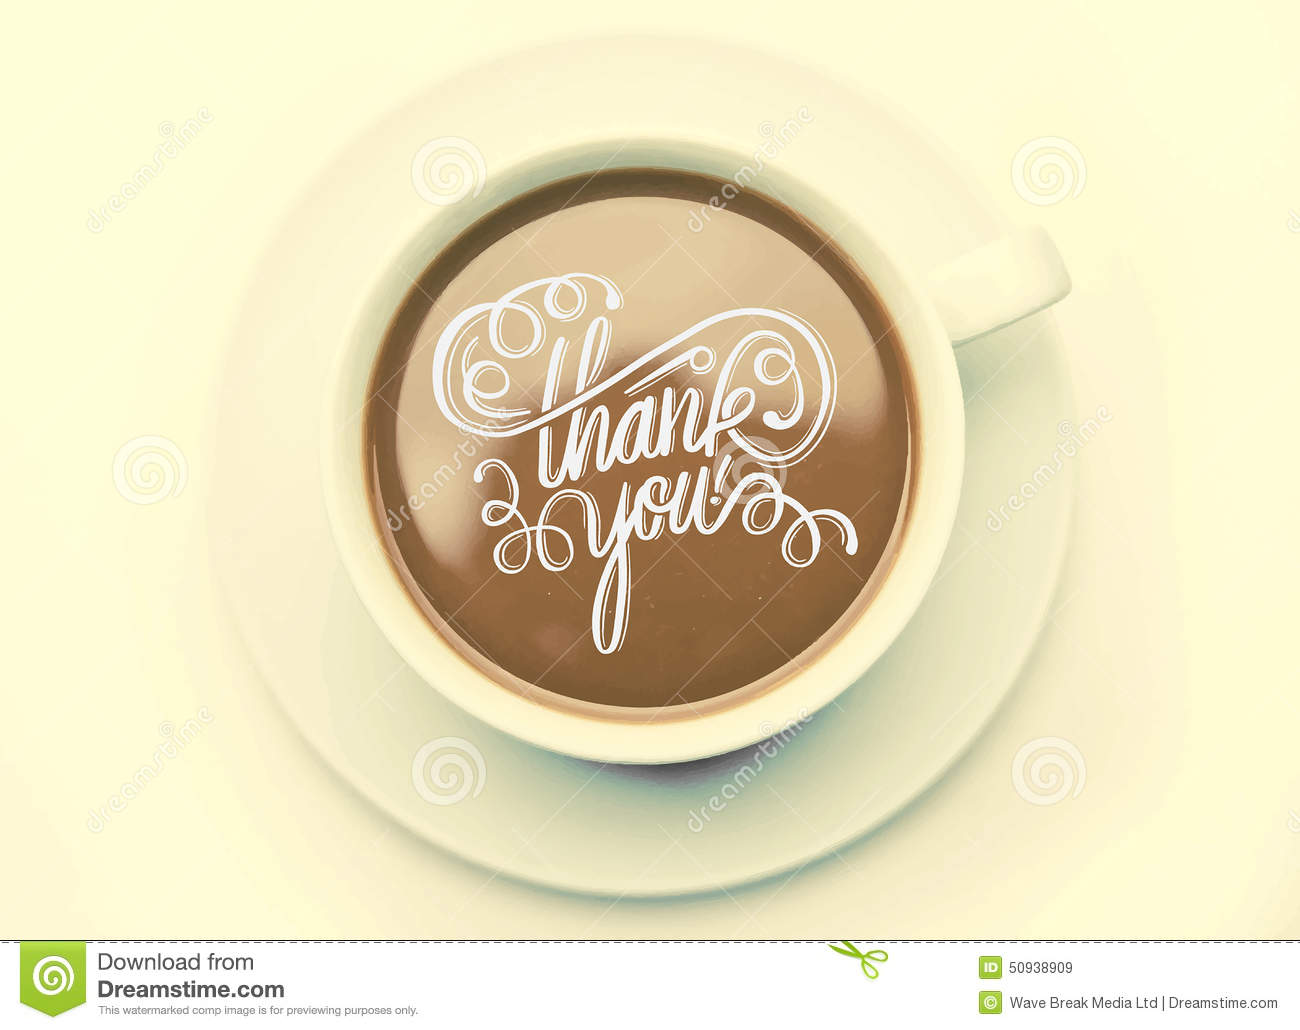 Thank You With Coffee Cup Vector Stock Vector - Image: 50938909